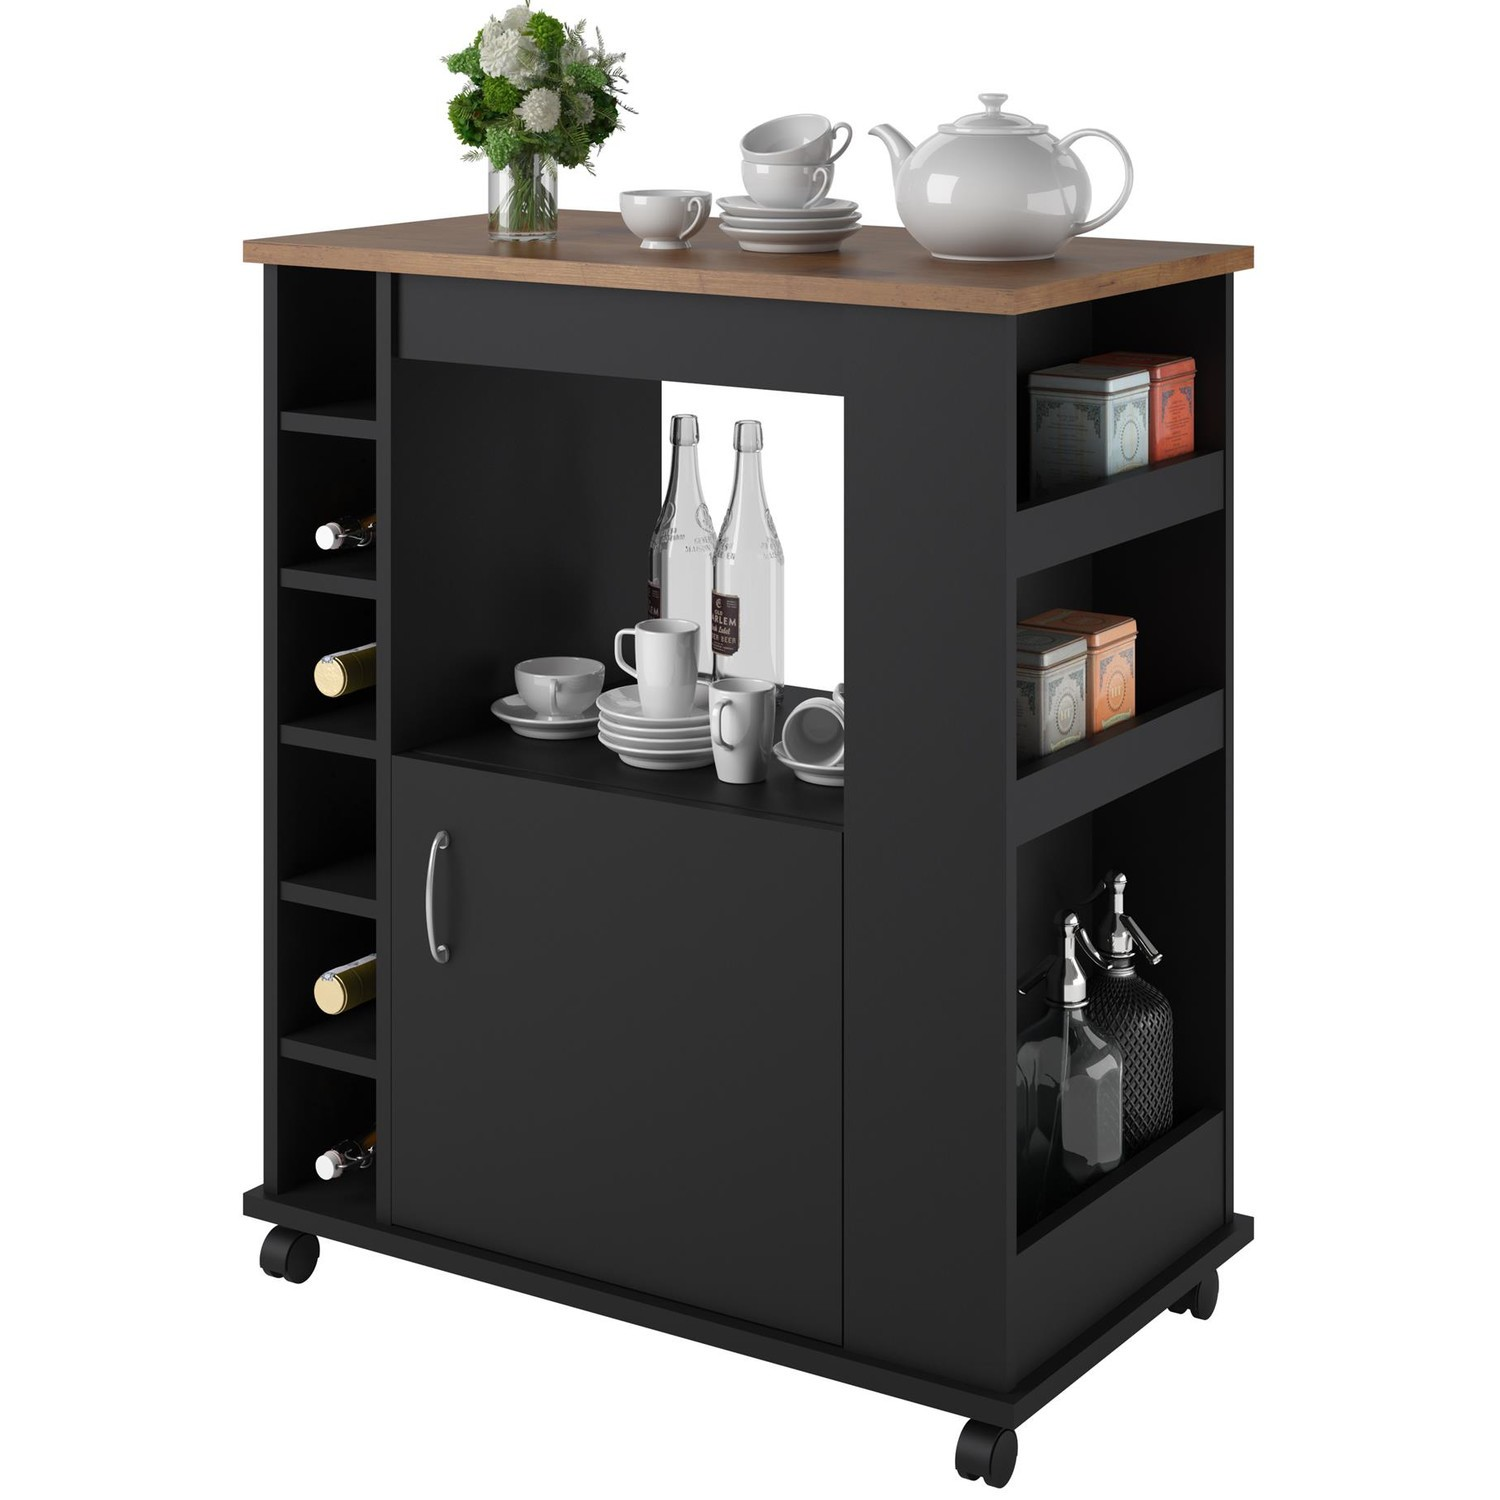 folding island kitchen cart | kitchen ideas